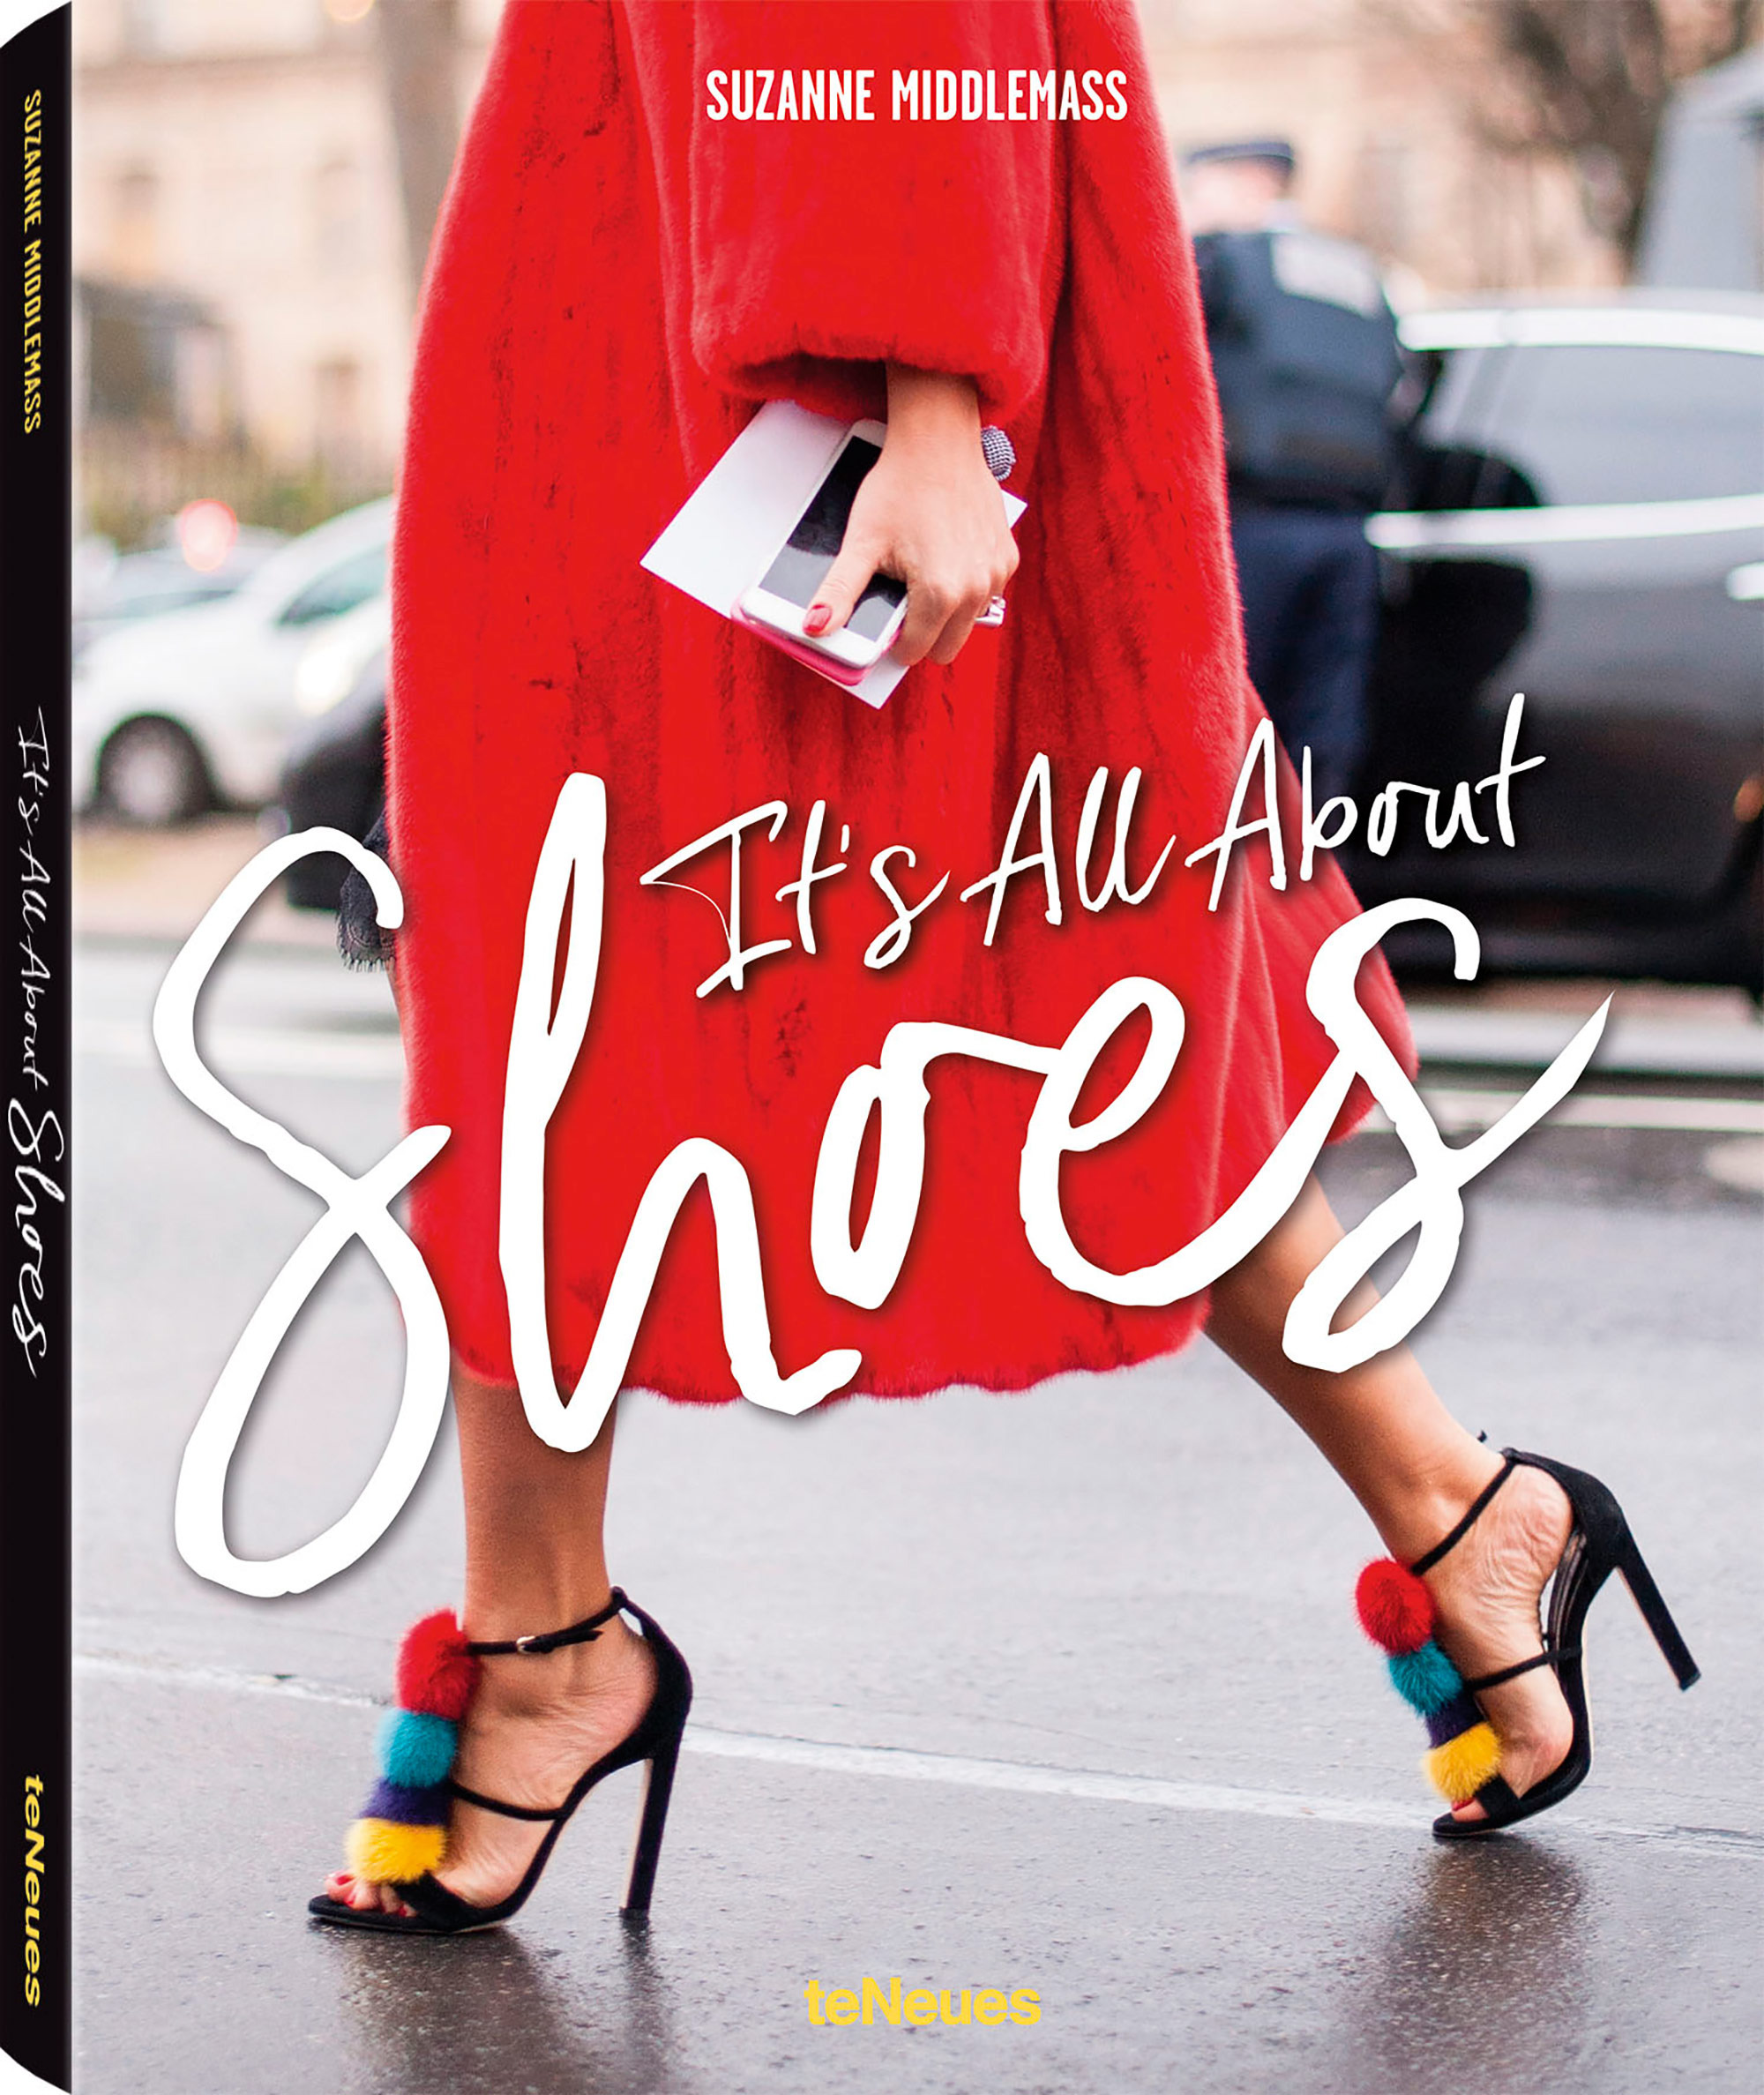 its-all-about-shoes-01.nocrop.w1800.h1330.2x